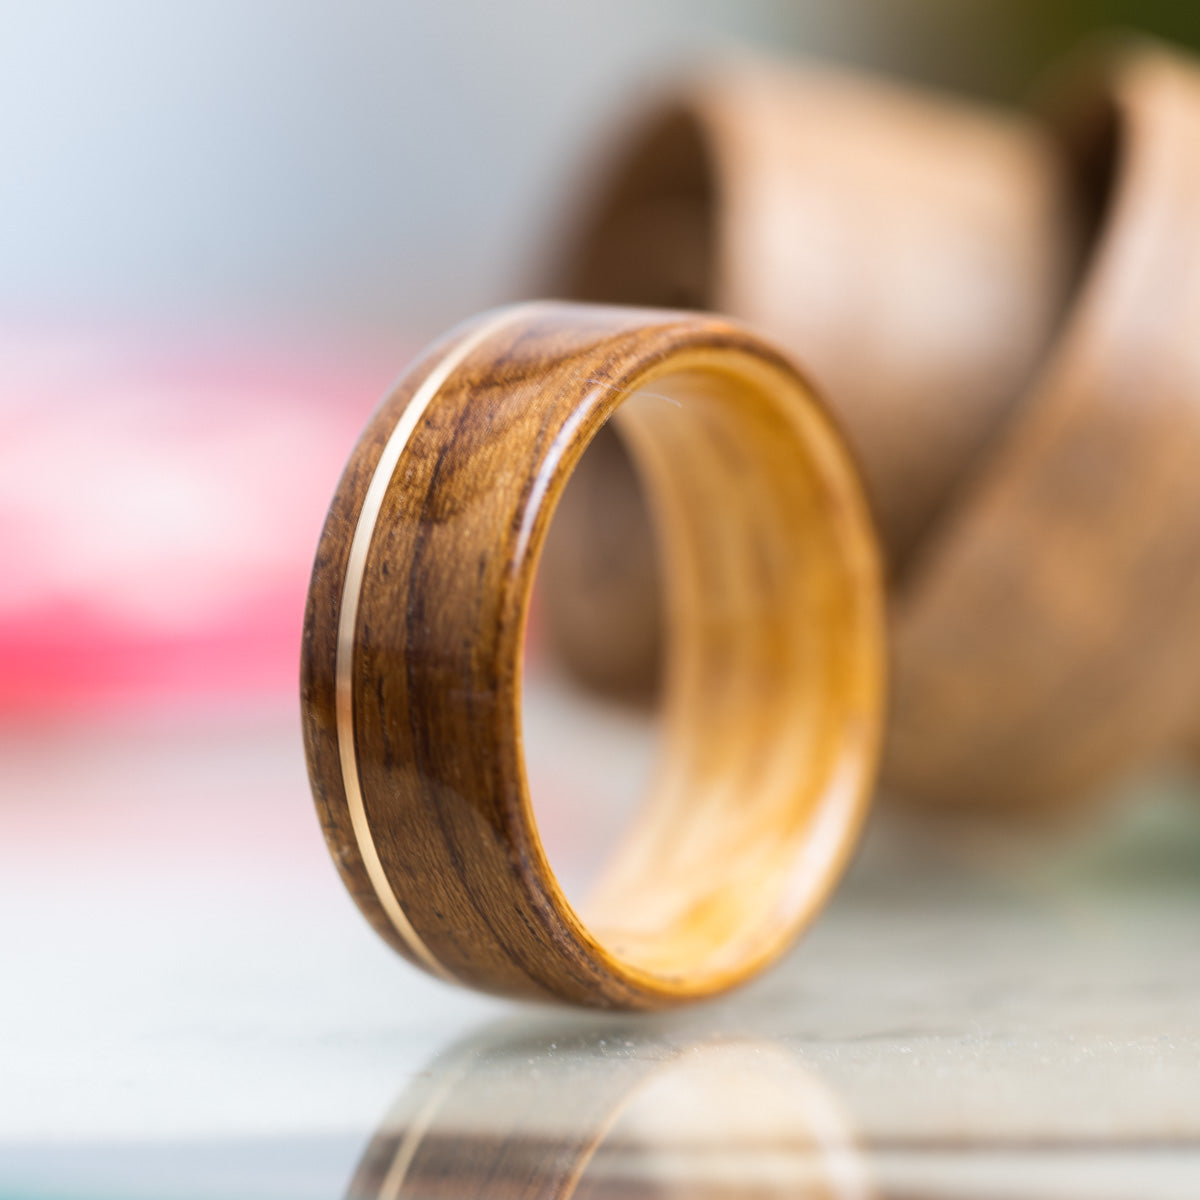 USS New Jersey Teak Wood Wedding Ring with Whiskey Barrel